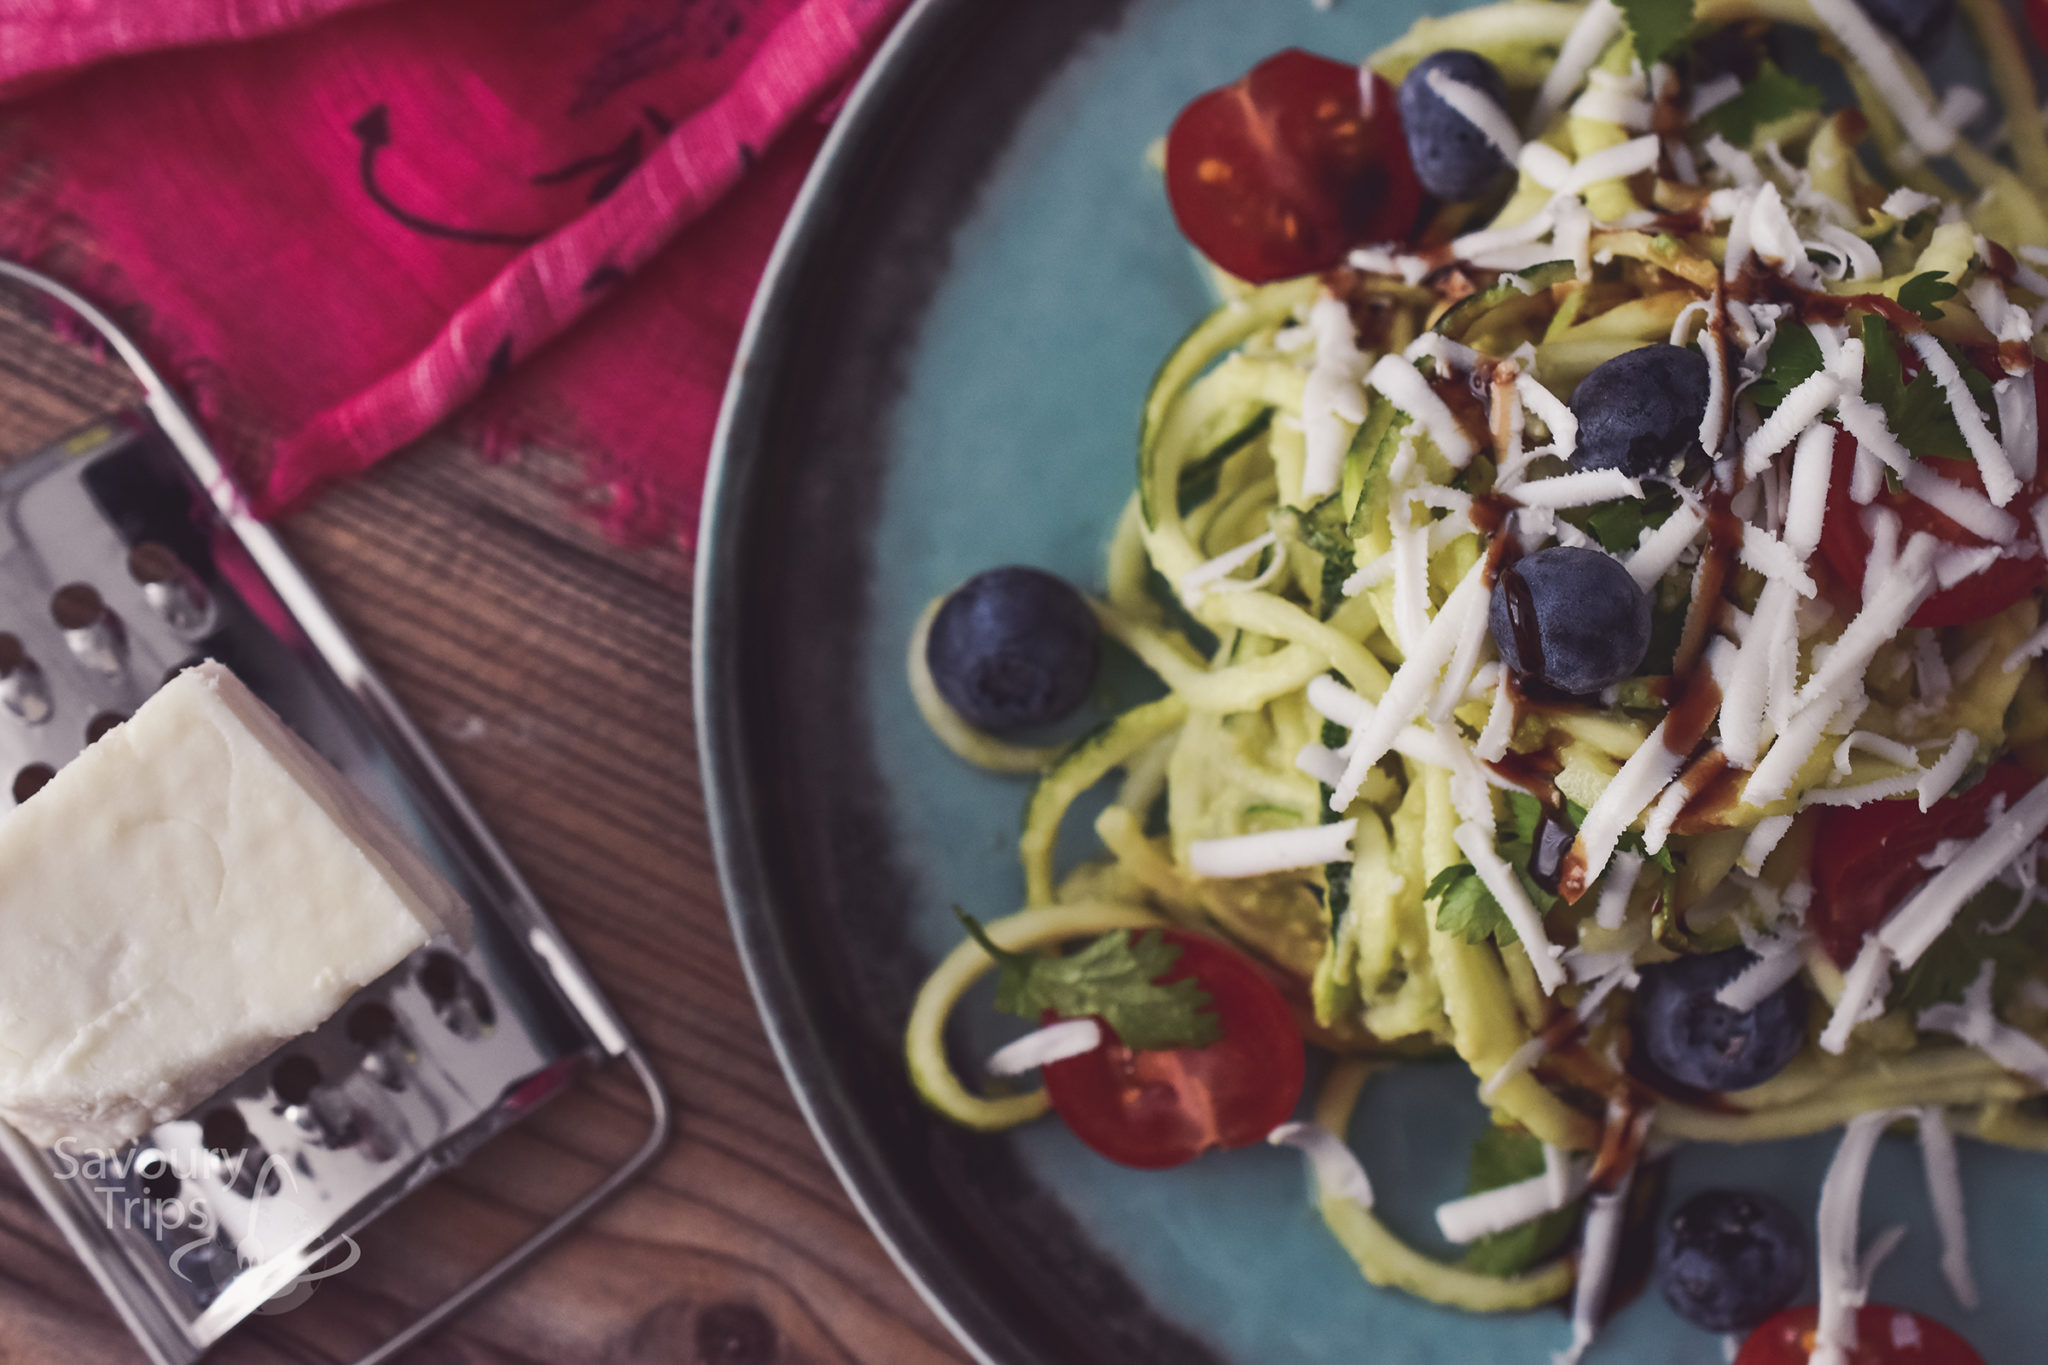 Spiralizer tikvice sa sirom i avokadom / spiralizer zucchini pasta salad with avocado and goat cheese